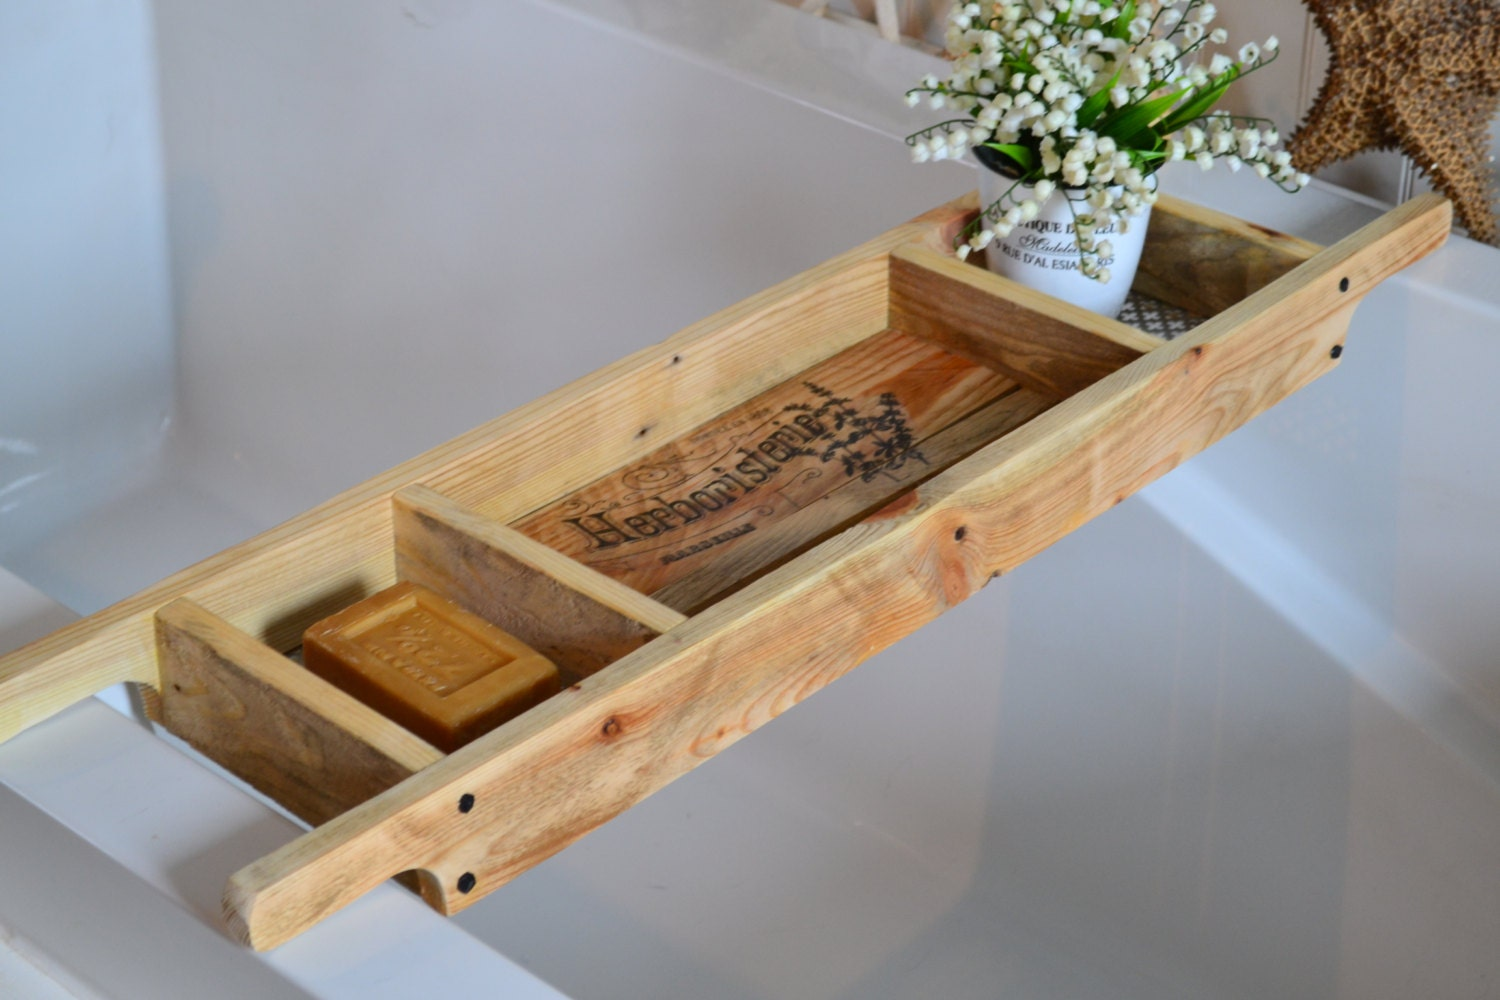 Bath Tray Recycled Pallet Wood Rustic Style Bath Rack